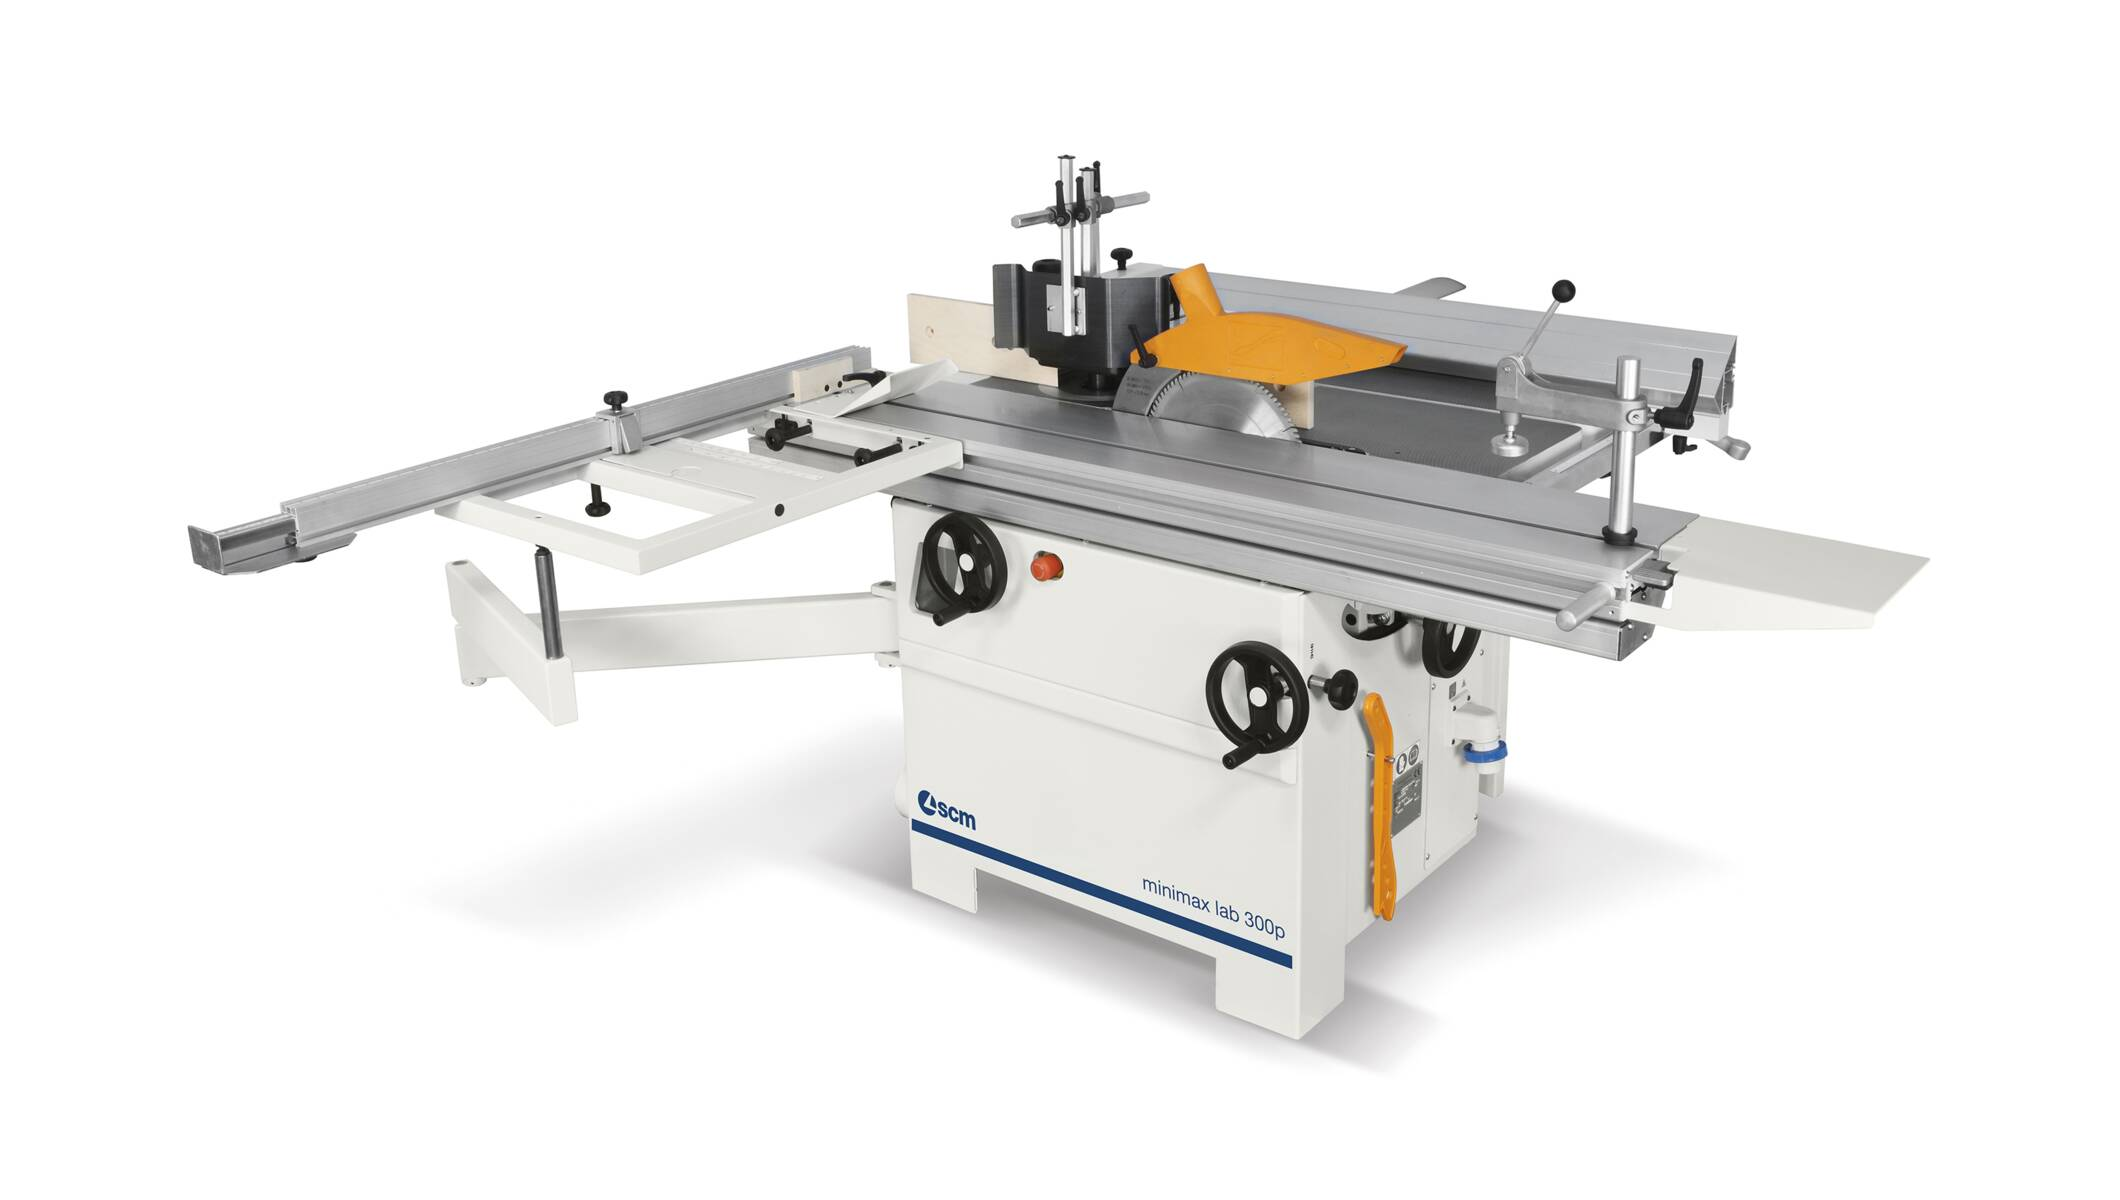 Joinery machines - Universal combination machines - minimax lab 300p